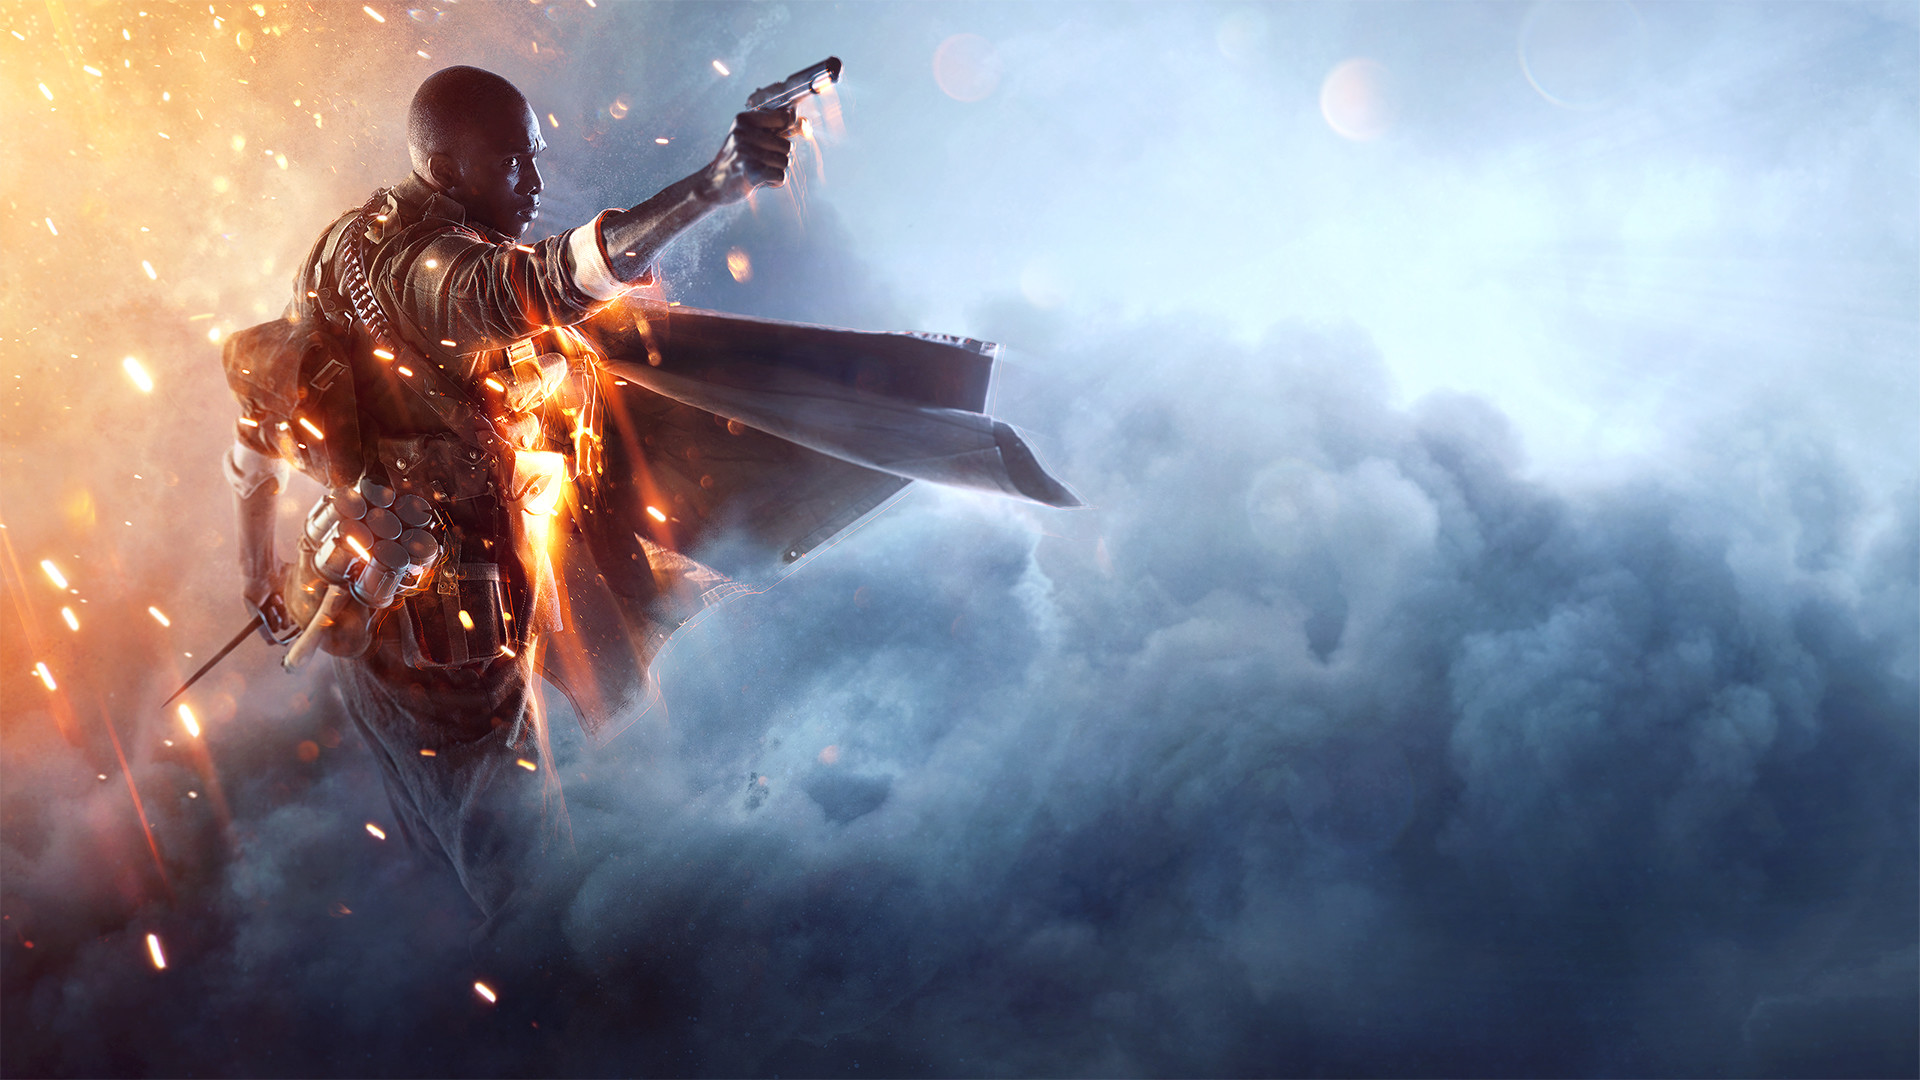 Battlefield 1 War Video Game Hd Wallpaper: Cool Wallpapers For Xbox One (70+ Images